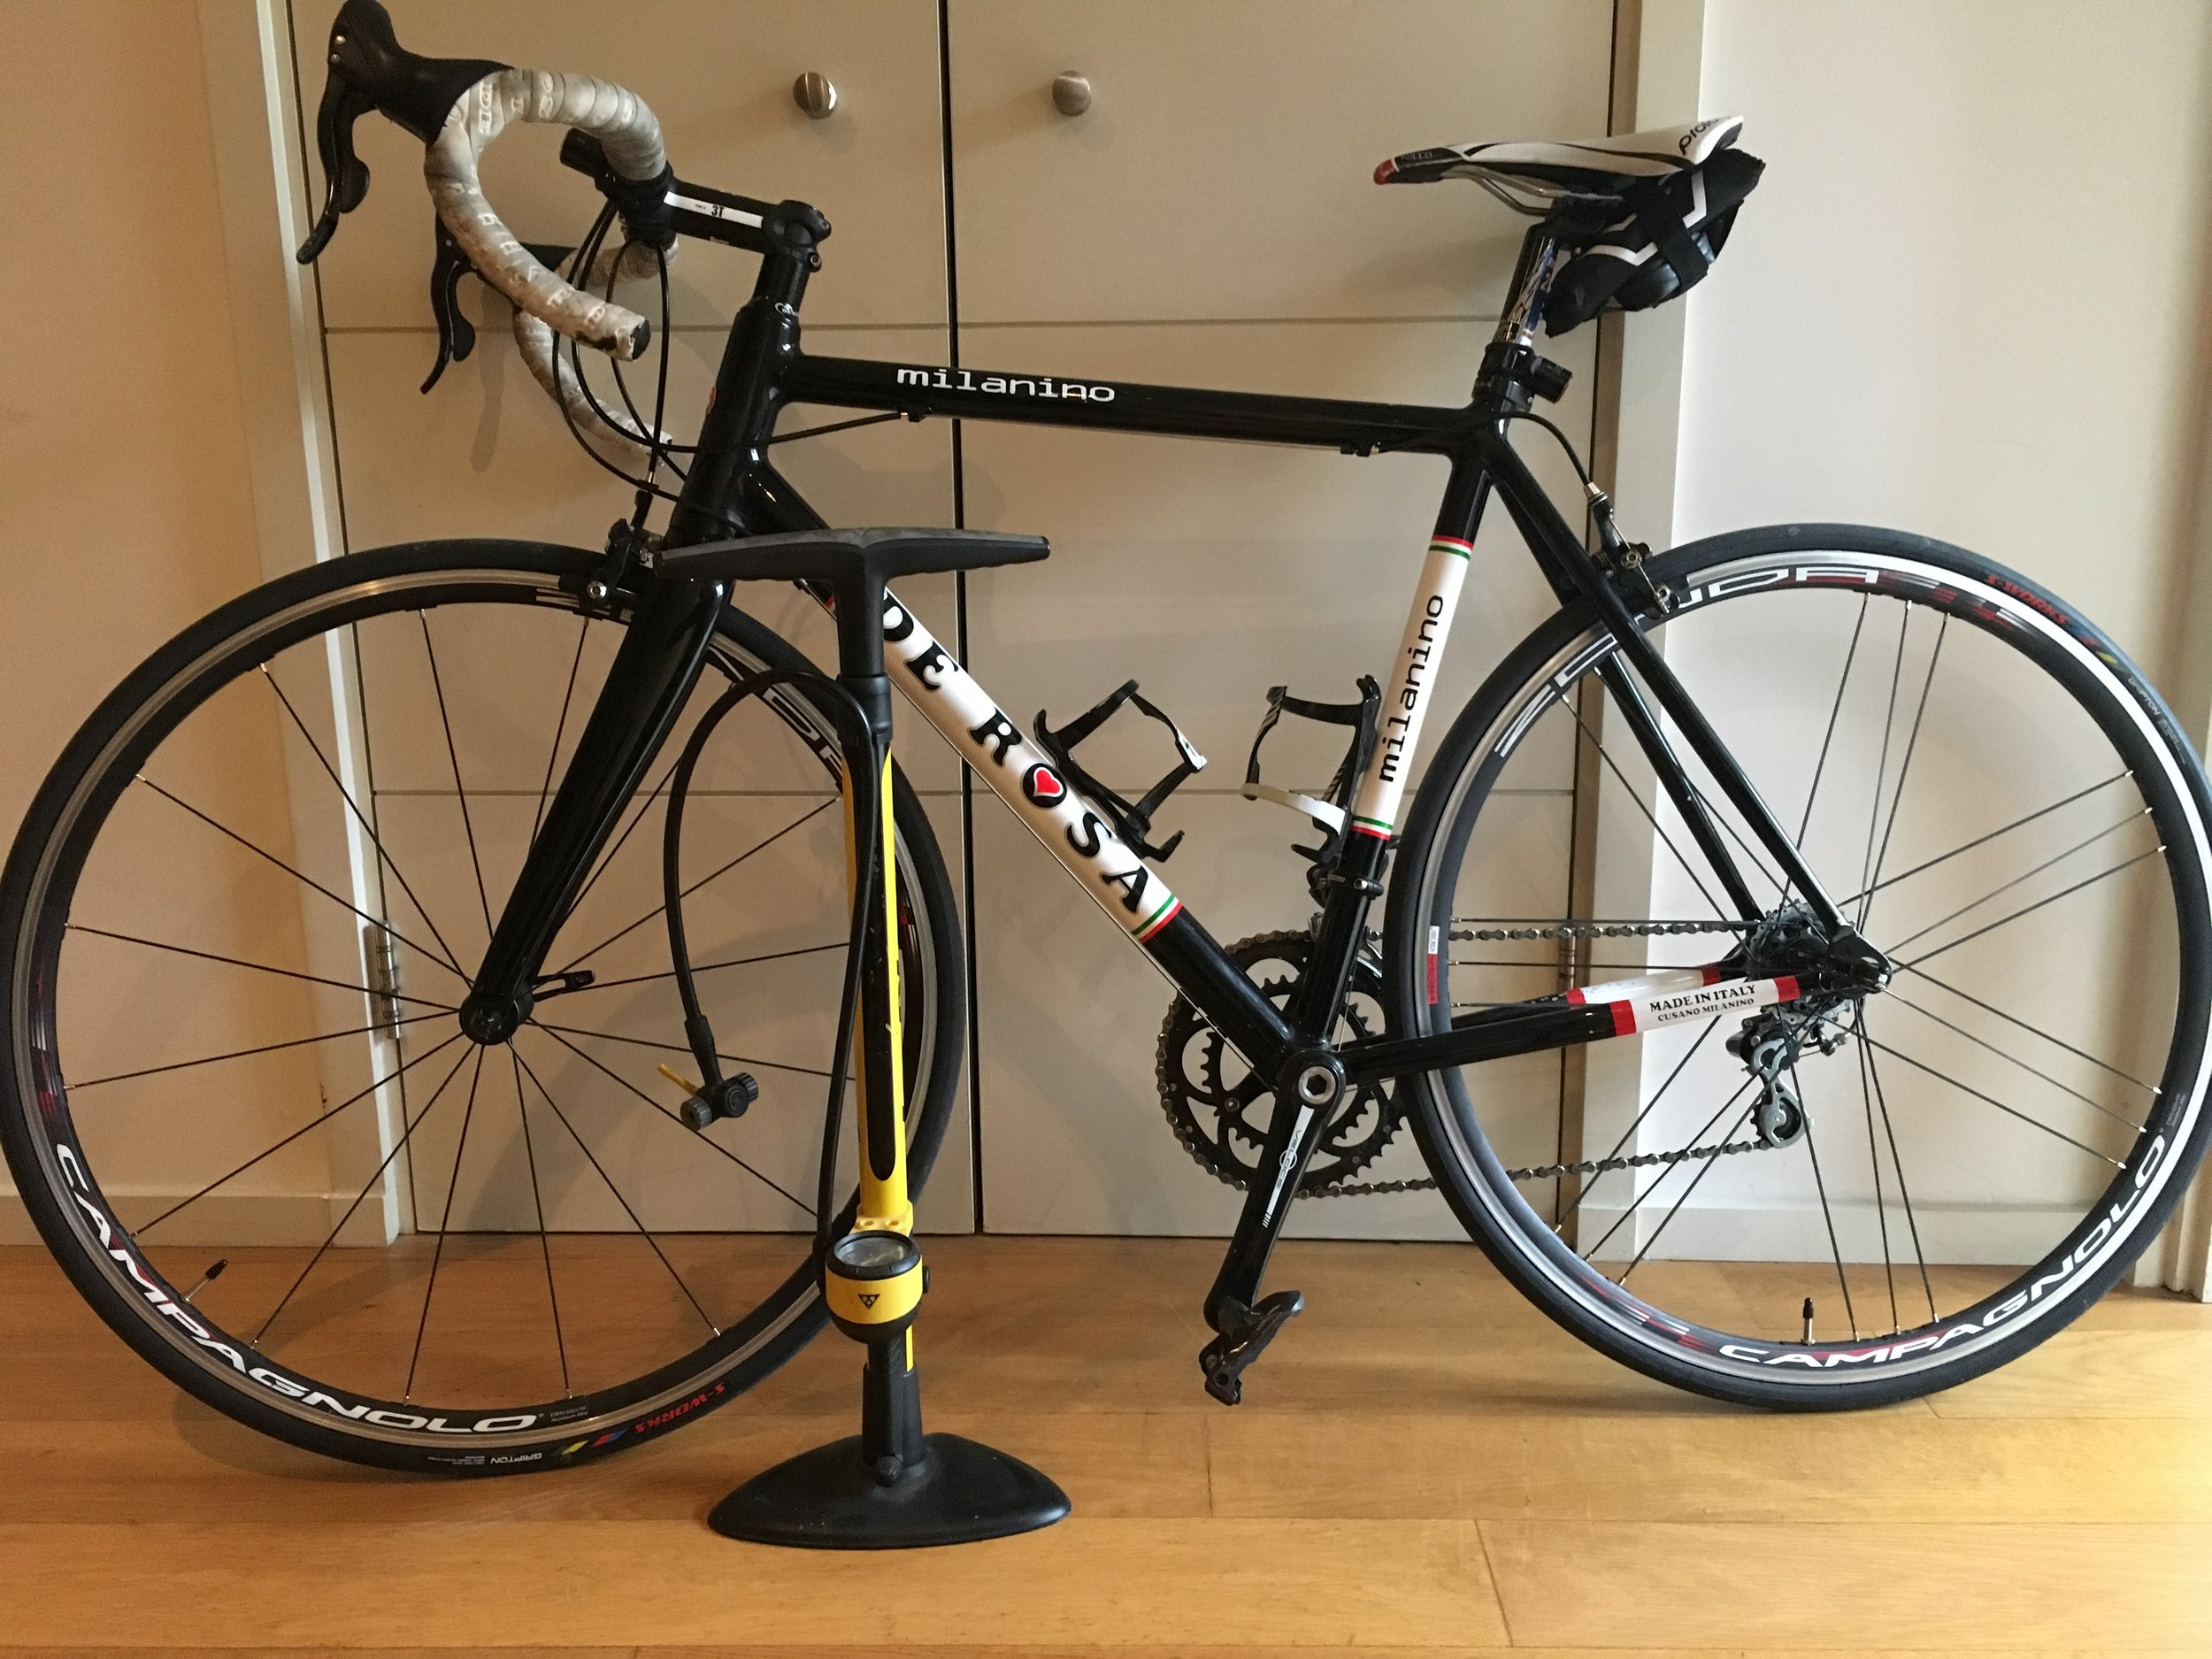 Back to the good old tried and tested conventional tyres (please excuse the bar tape!)